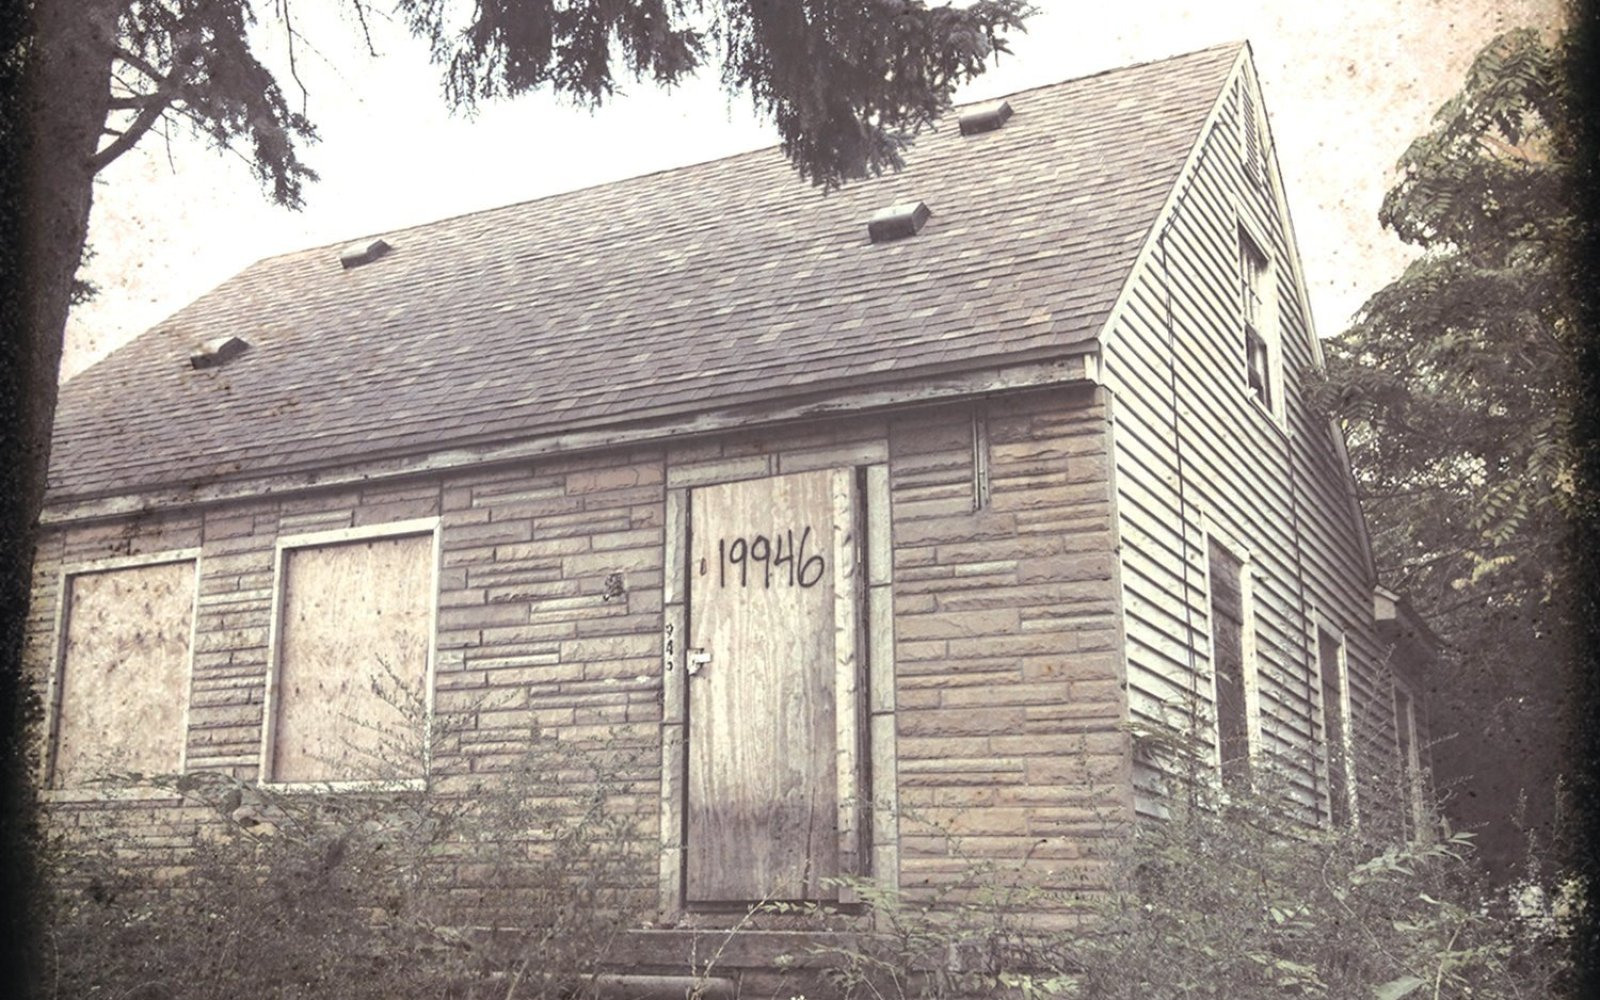 After album leak, Eminem's Marshall Mathers LP 2 stream hits iTunes Radio 'First Play' station